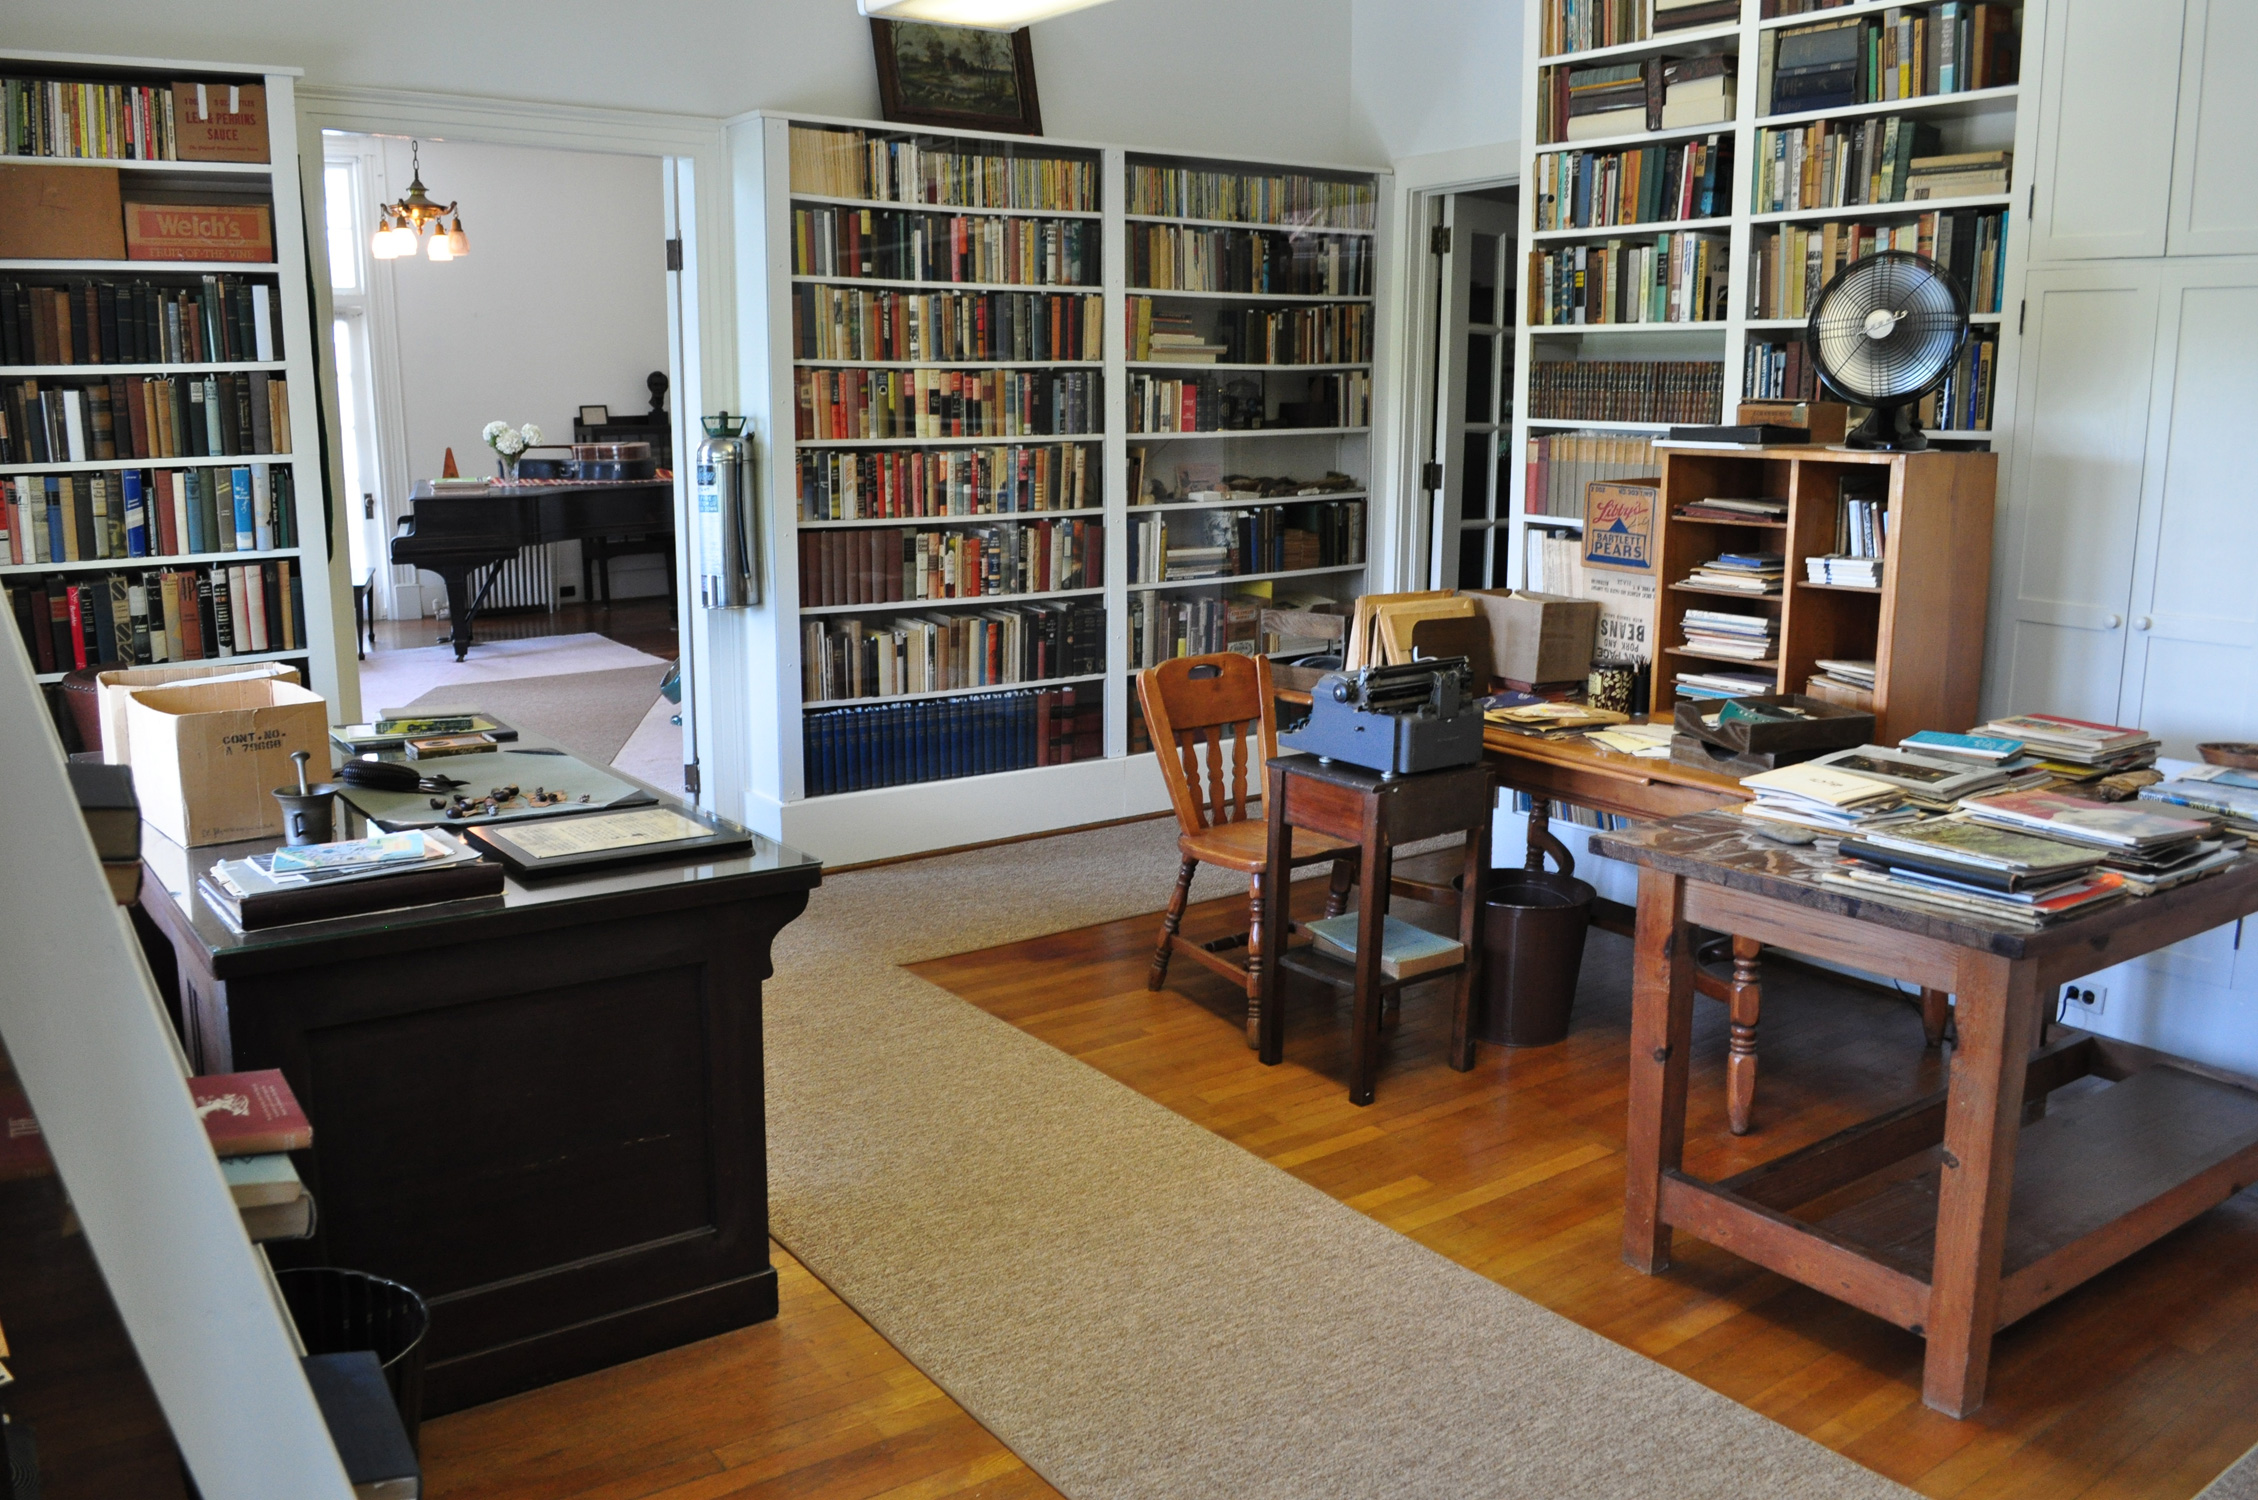 Carl Sandburg's study at the Carl Sandburg Home National Historic Site